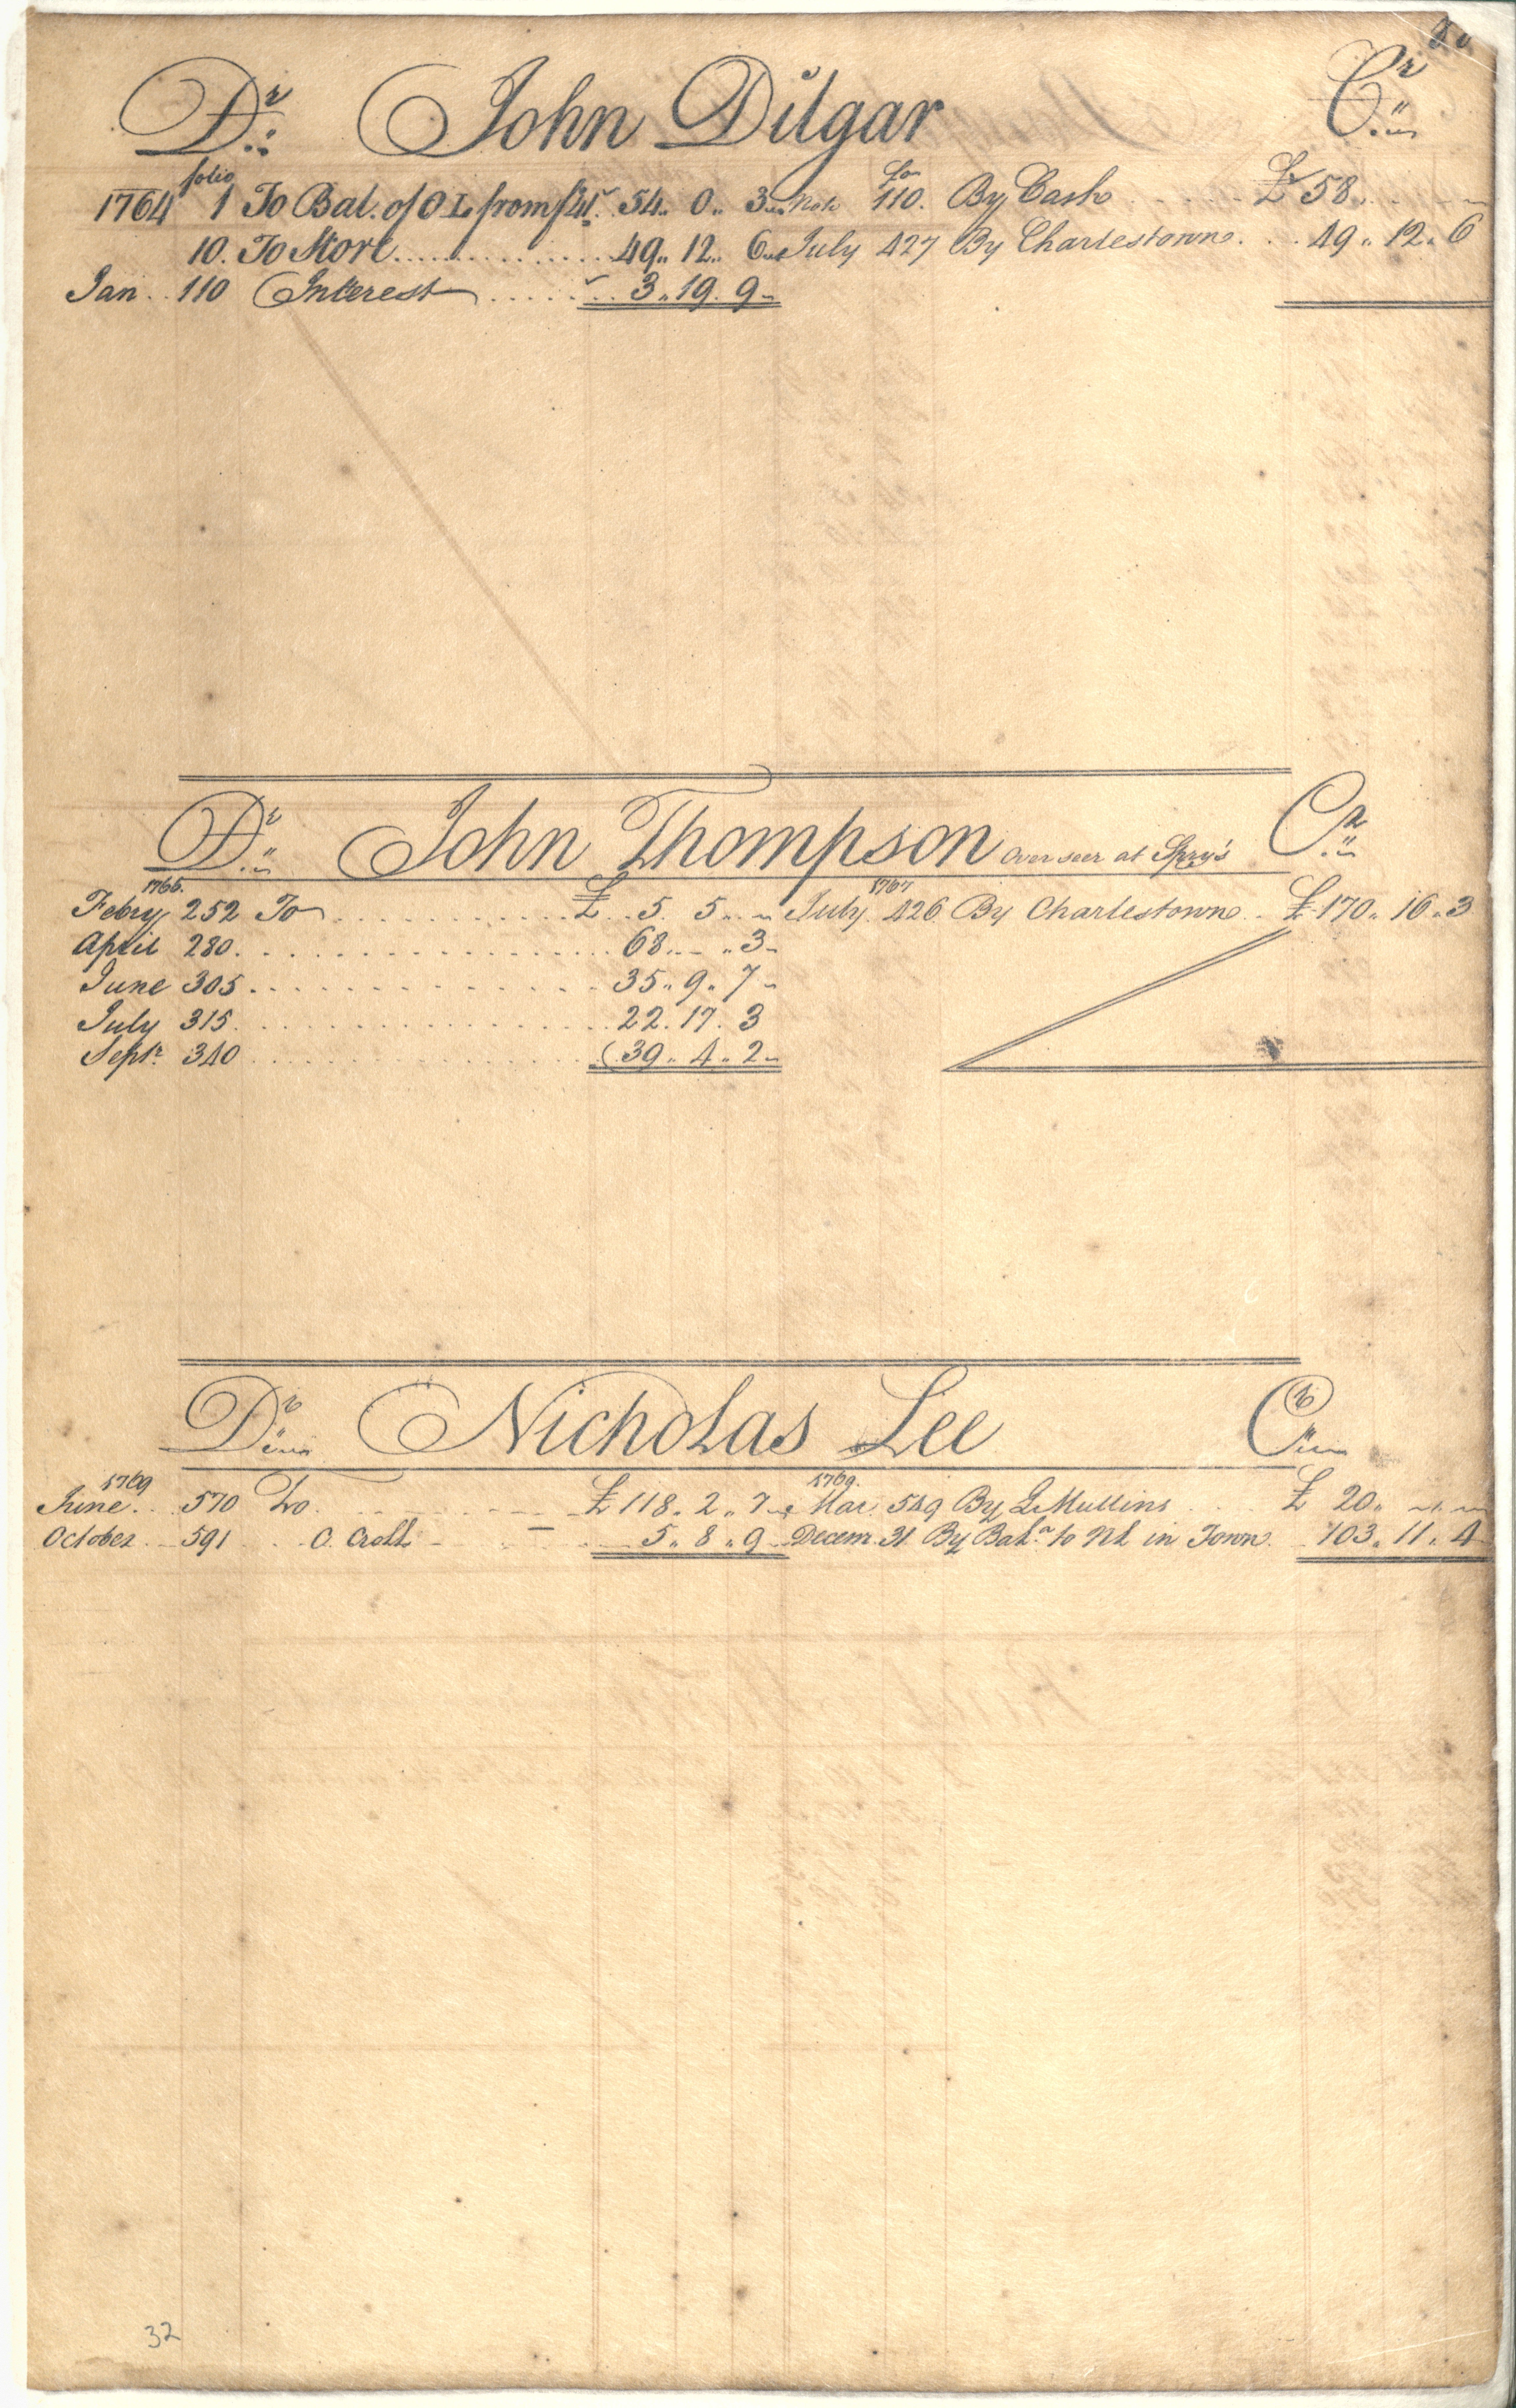 Plowden Weston's Business Ledger, page 88